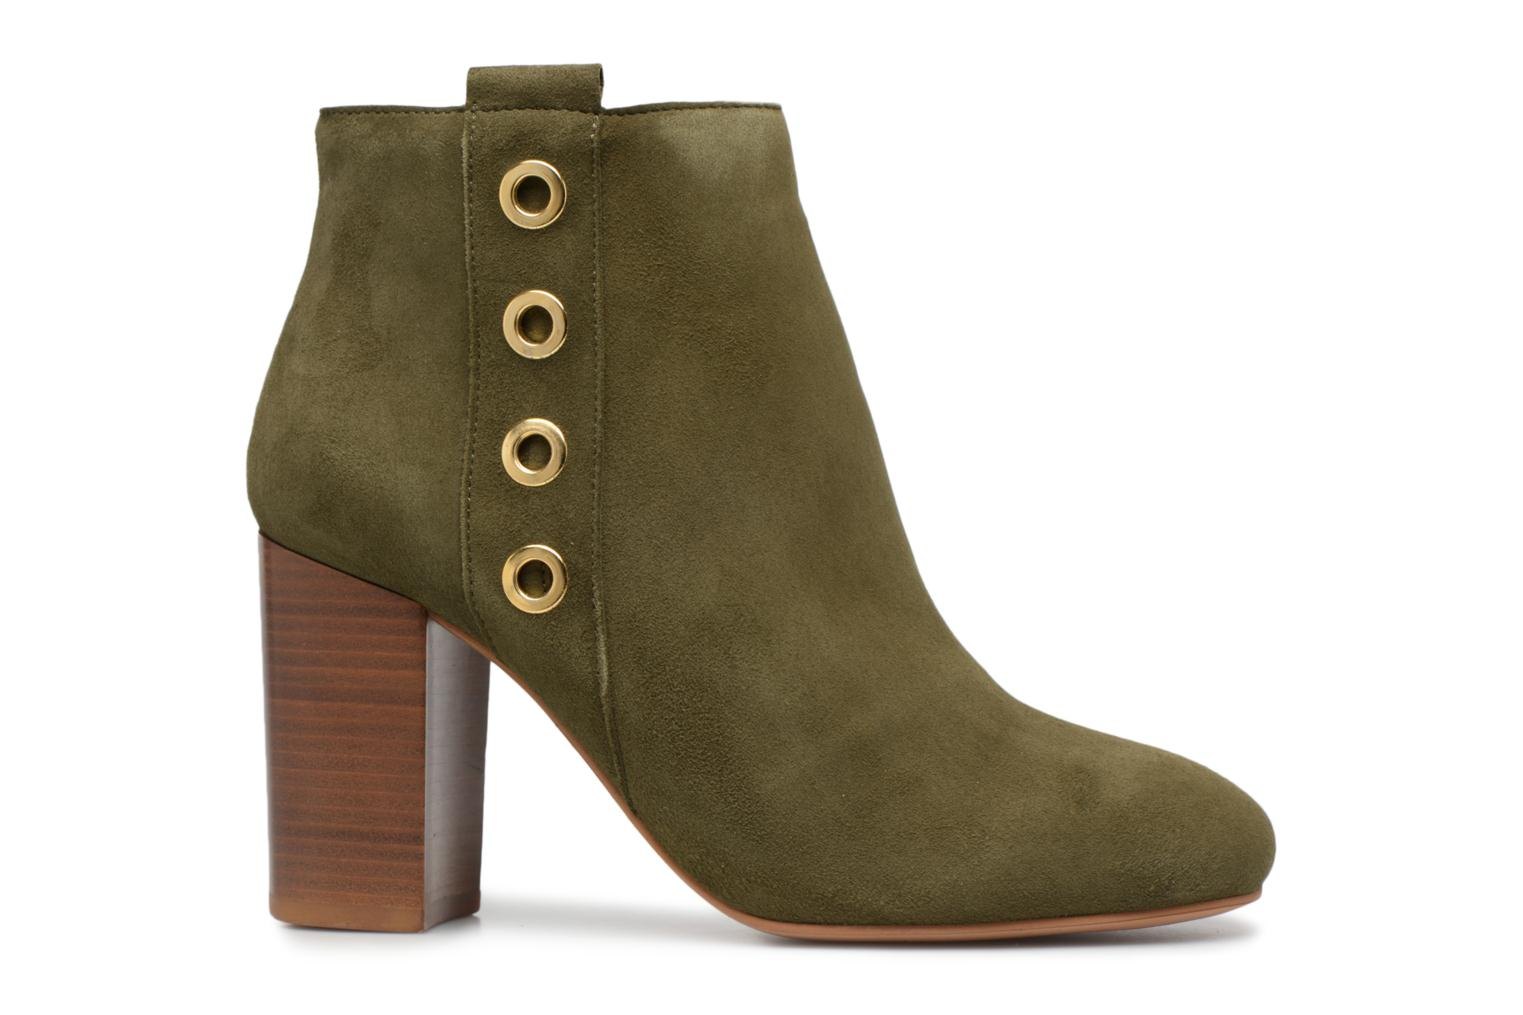 Marques Chaussure femme Made by SARENZA femme 90's Girls Gang Boots #2 Cuir Velours kaki